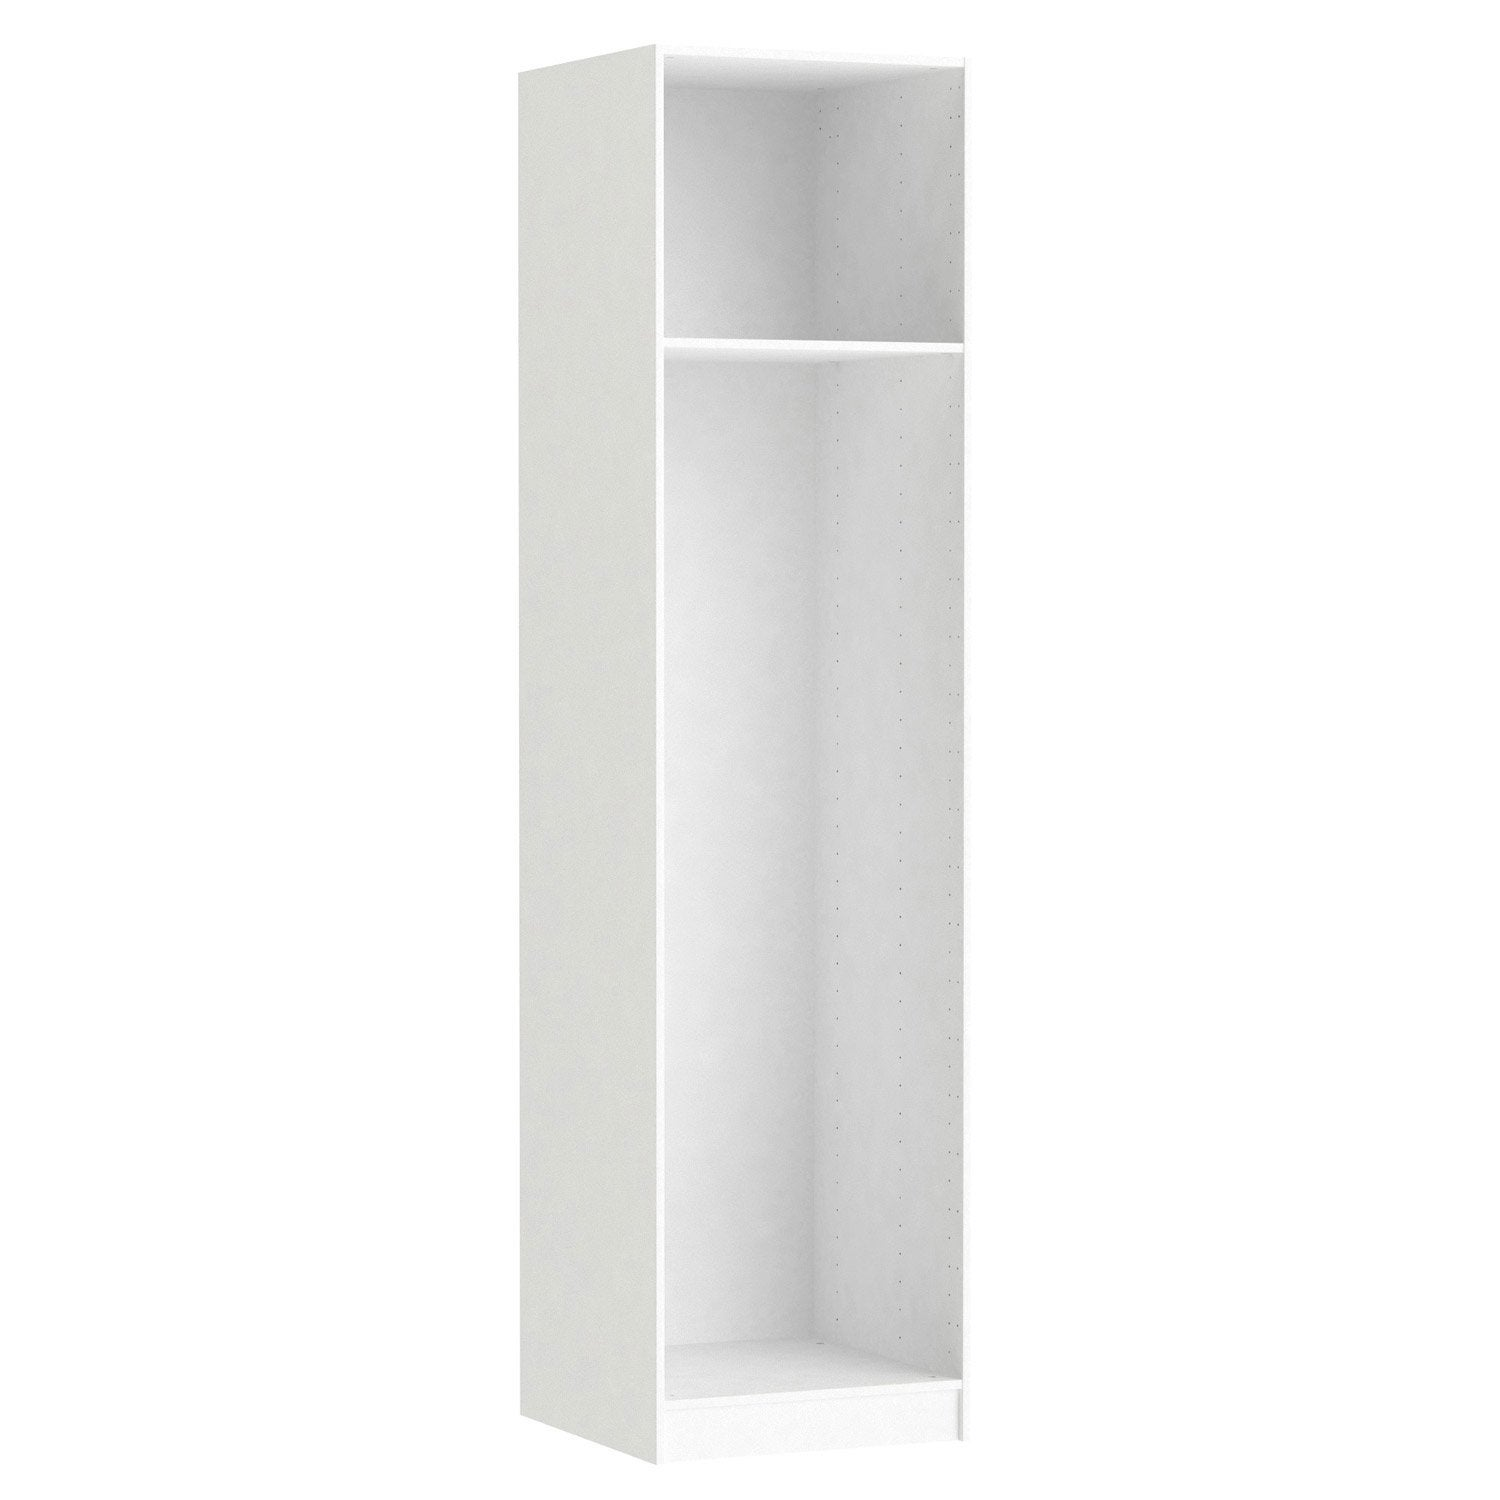 Caisson spaceo home 240 x 60 x 60 cm blanc leroy merlin for Porte 60 x 60